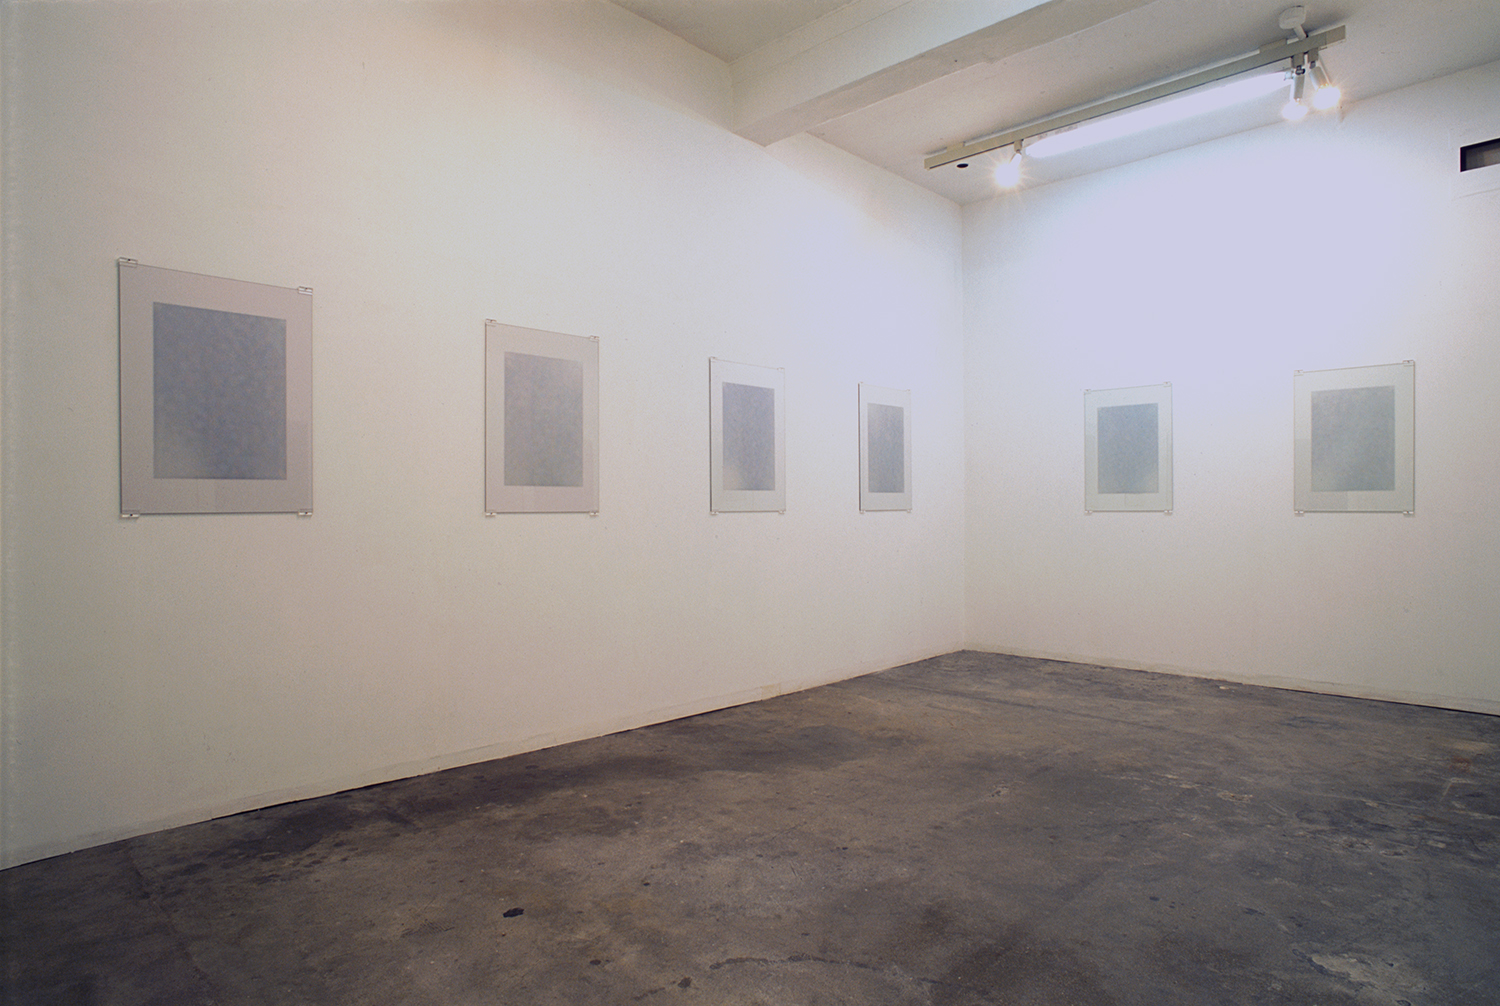 Installation view: Float series|Acrylic on glass|image: 515 x 360 mm, glass: 720 x 515 x 3 mm|2006 each